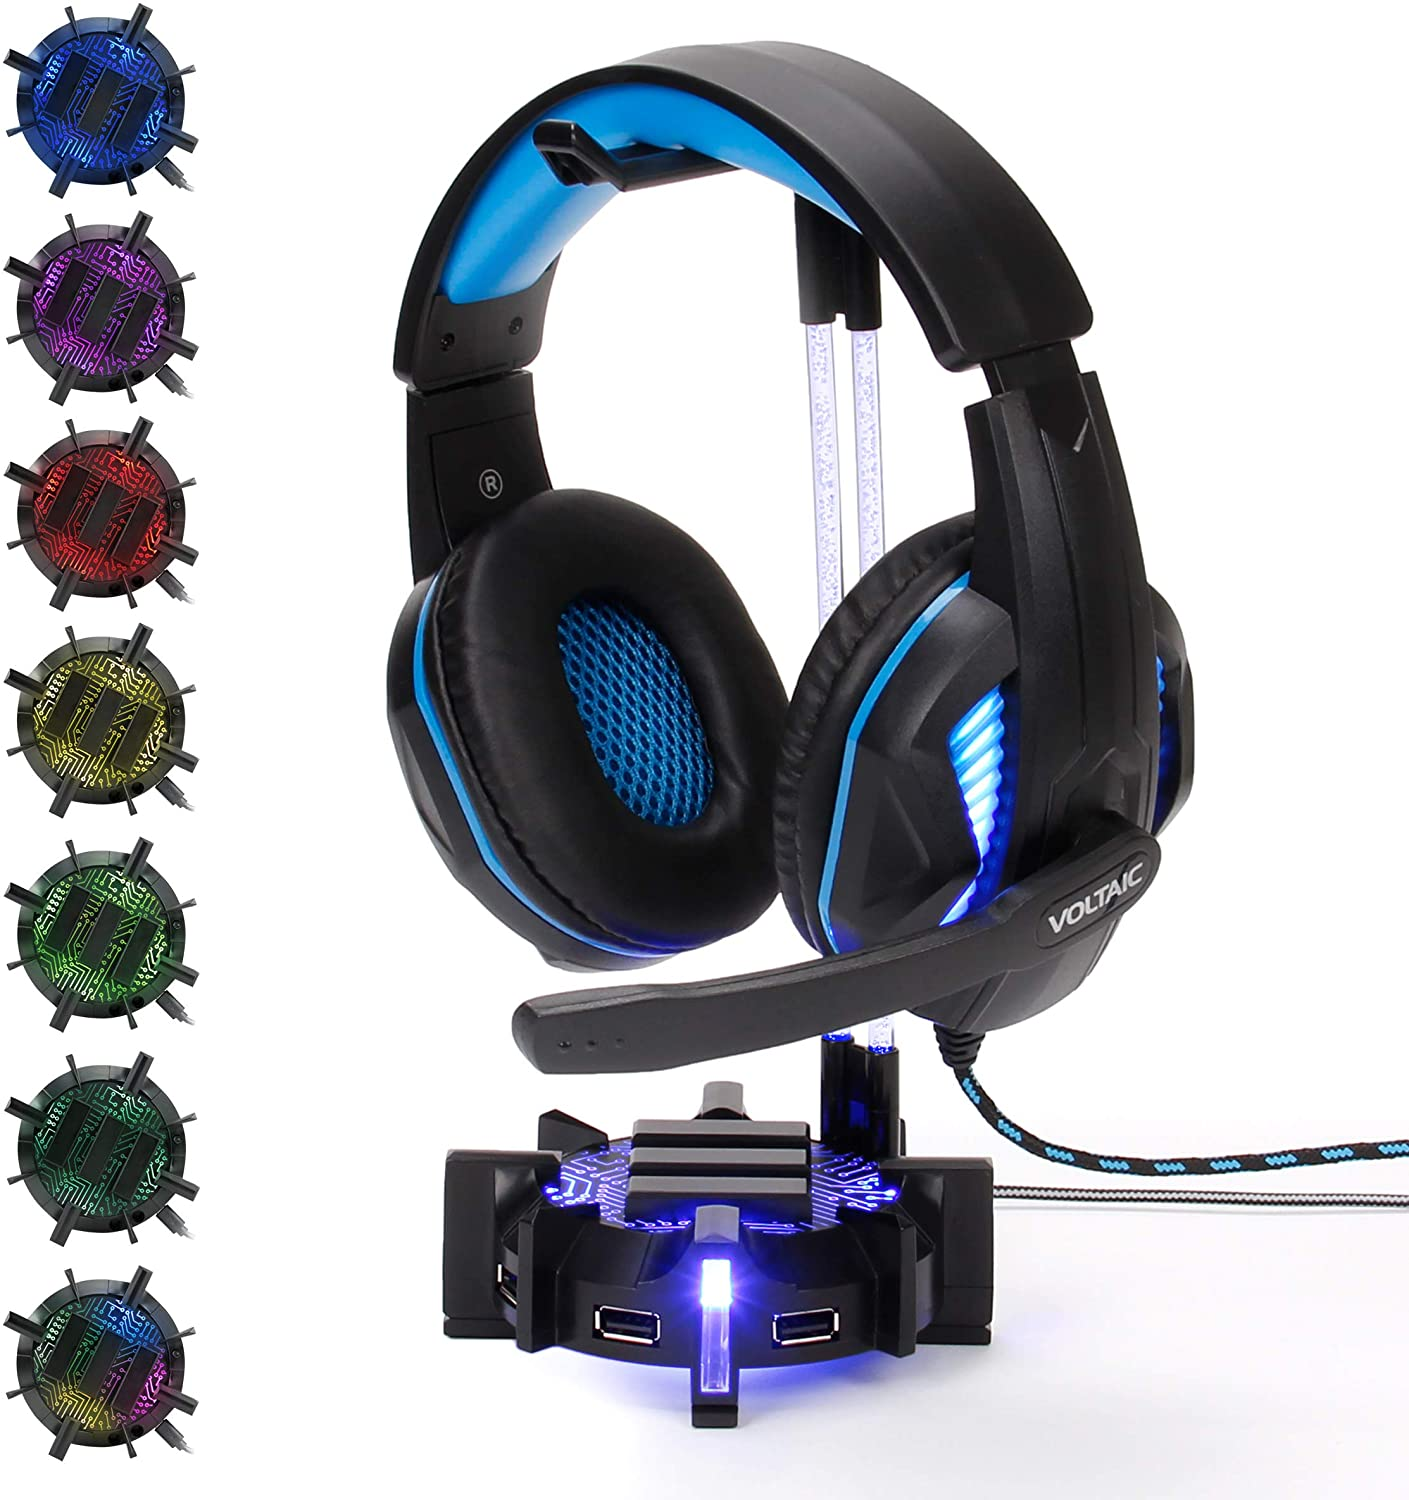 ENHANCE Gaming Louisville-Jefferson County Mall Headset Stand Headphone Holder 4 with service Port Hu USB